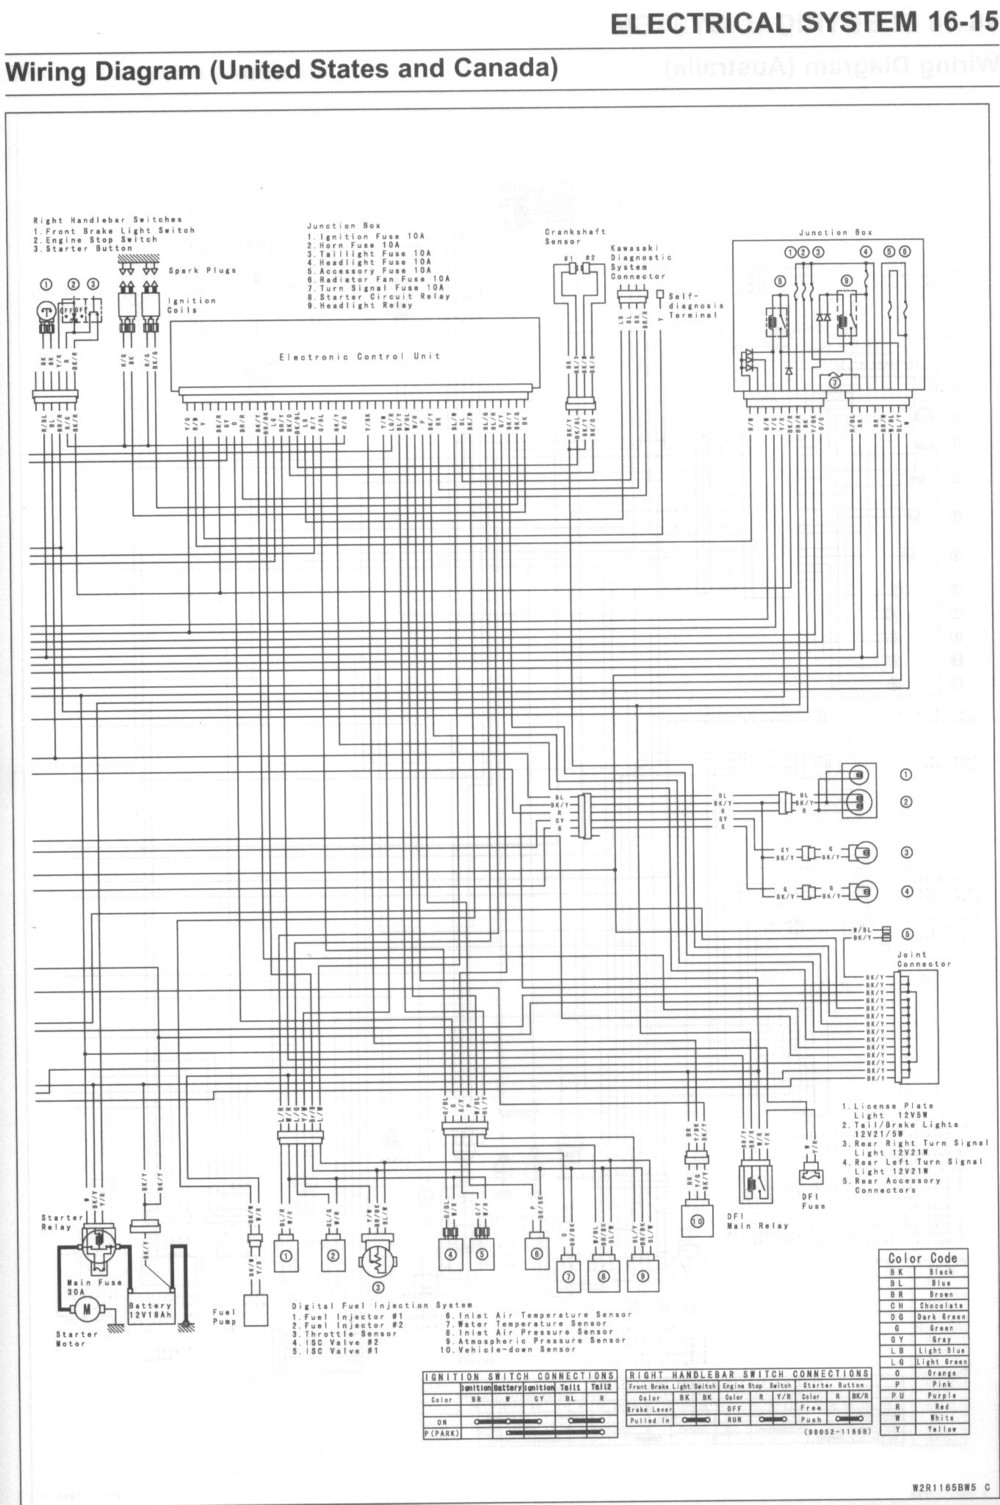 Vulcan Vn1500 Wiring Diagram Will Be A Thing Zx1200 Auto Electrical 1998 1500 Kawasaki